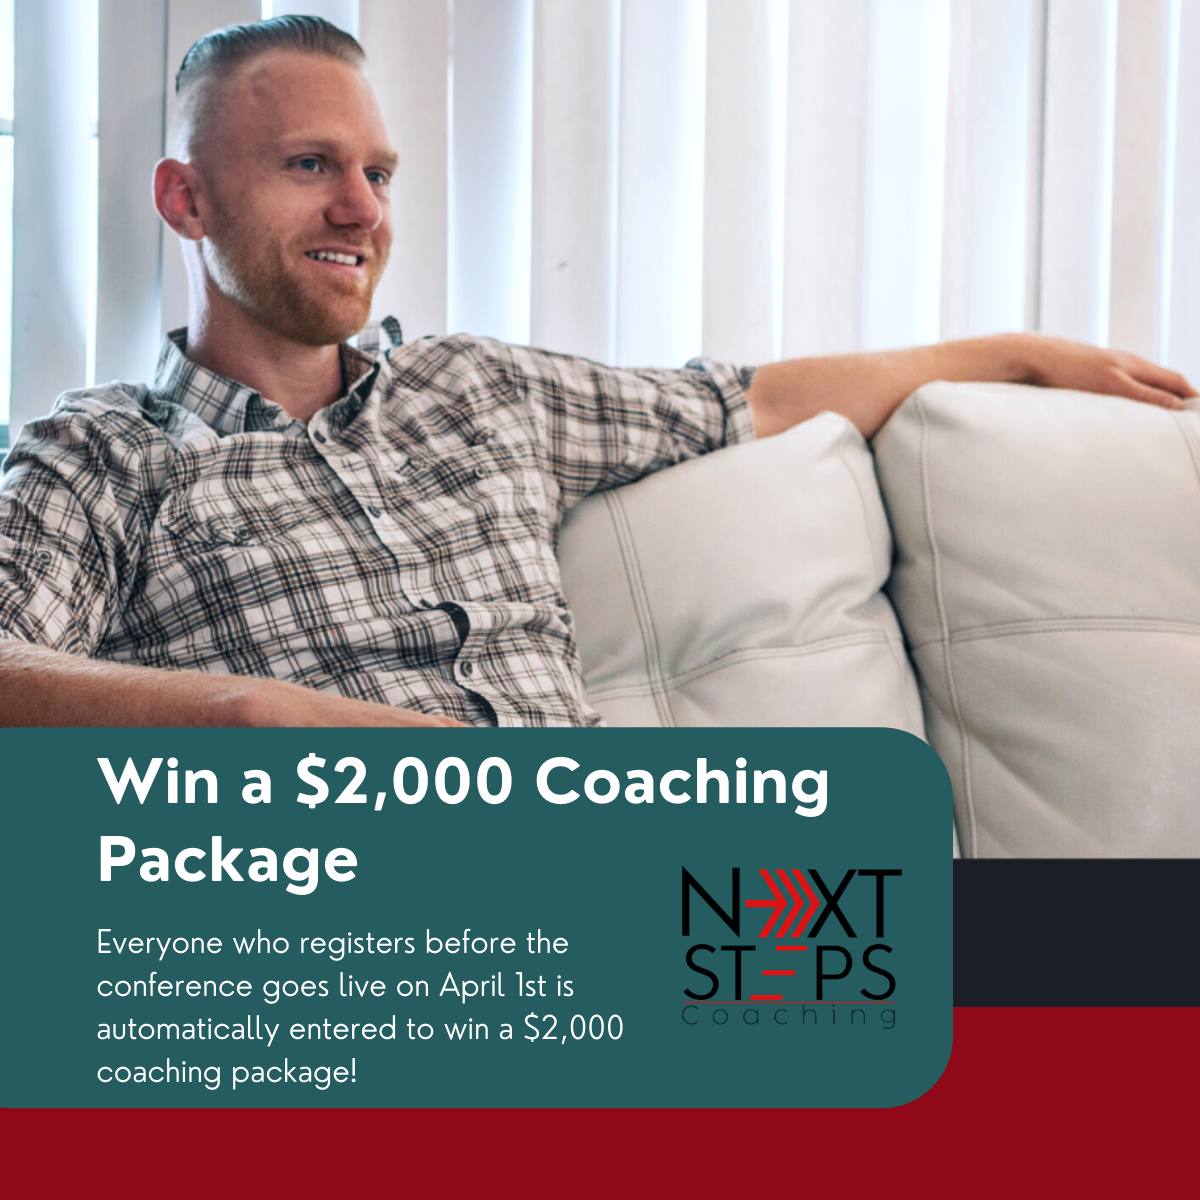 Justin relaxed on a couch, smiling with overlay text to win a $2,000 coaching package when enrolling in the conference before April 1st.